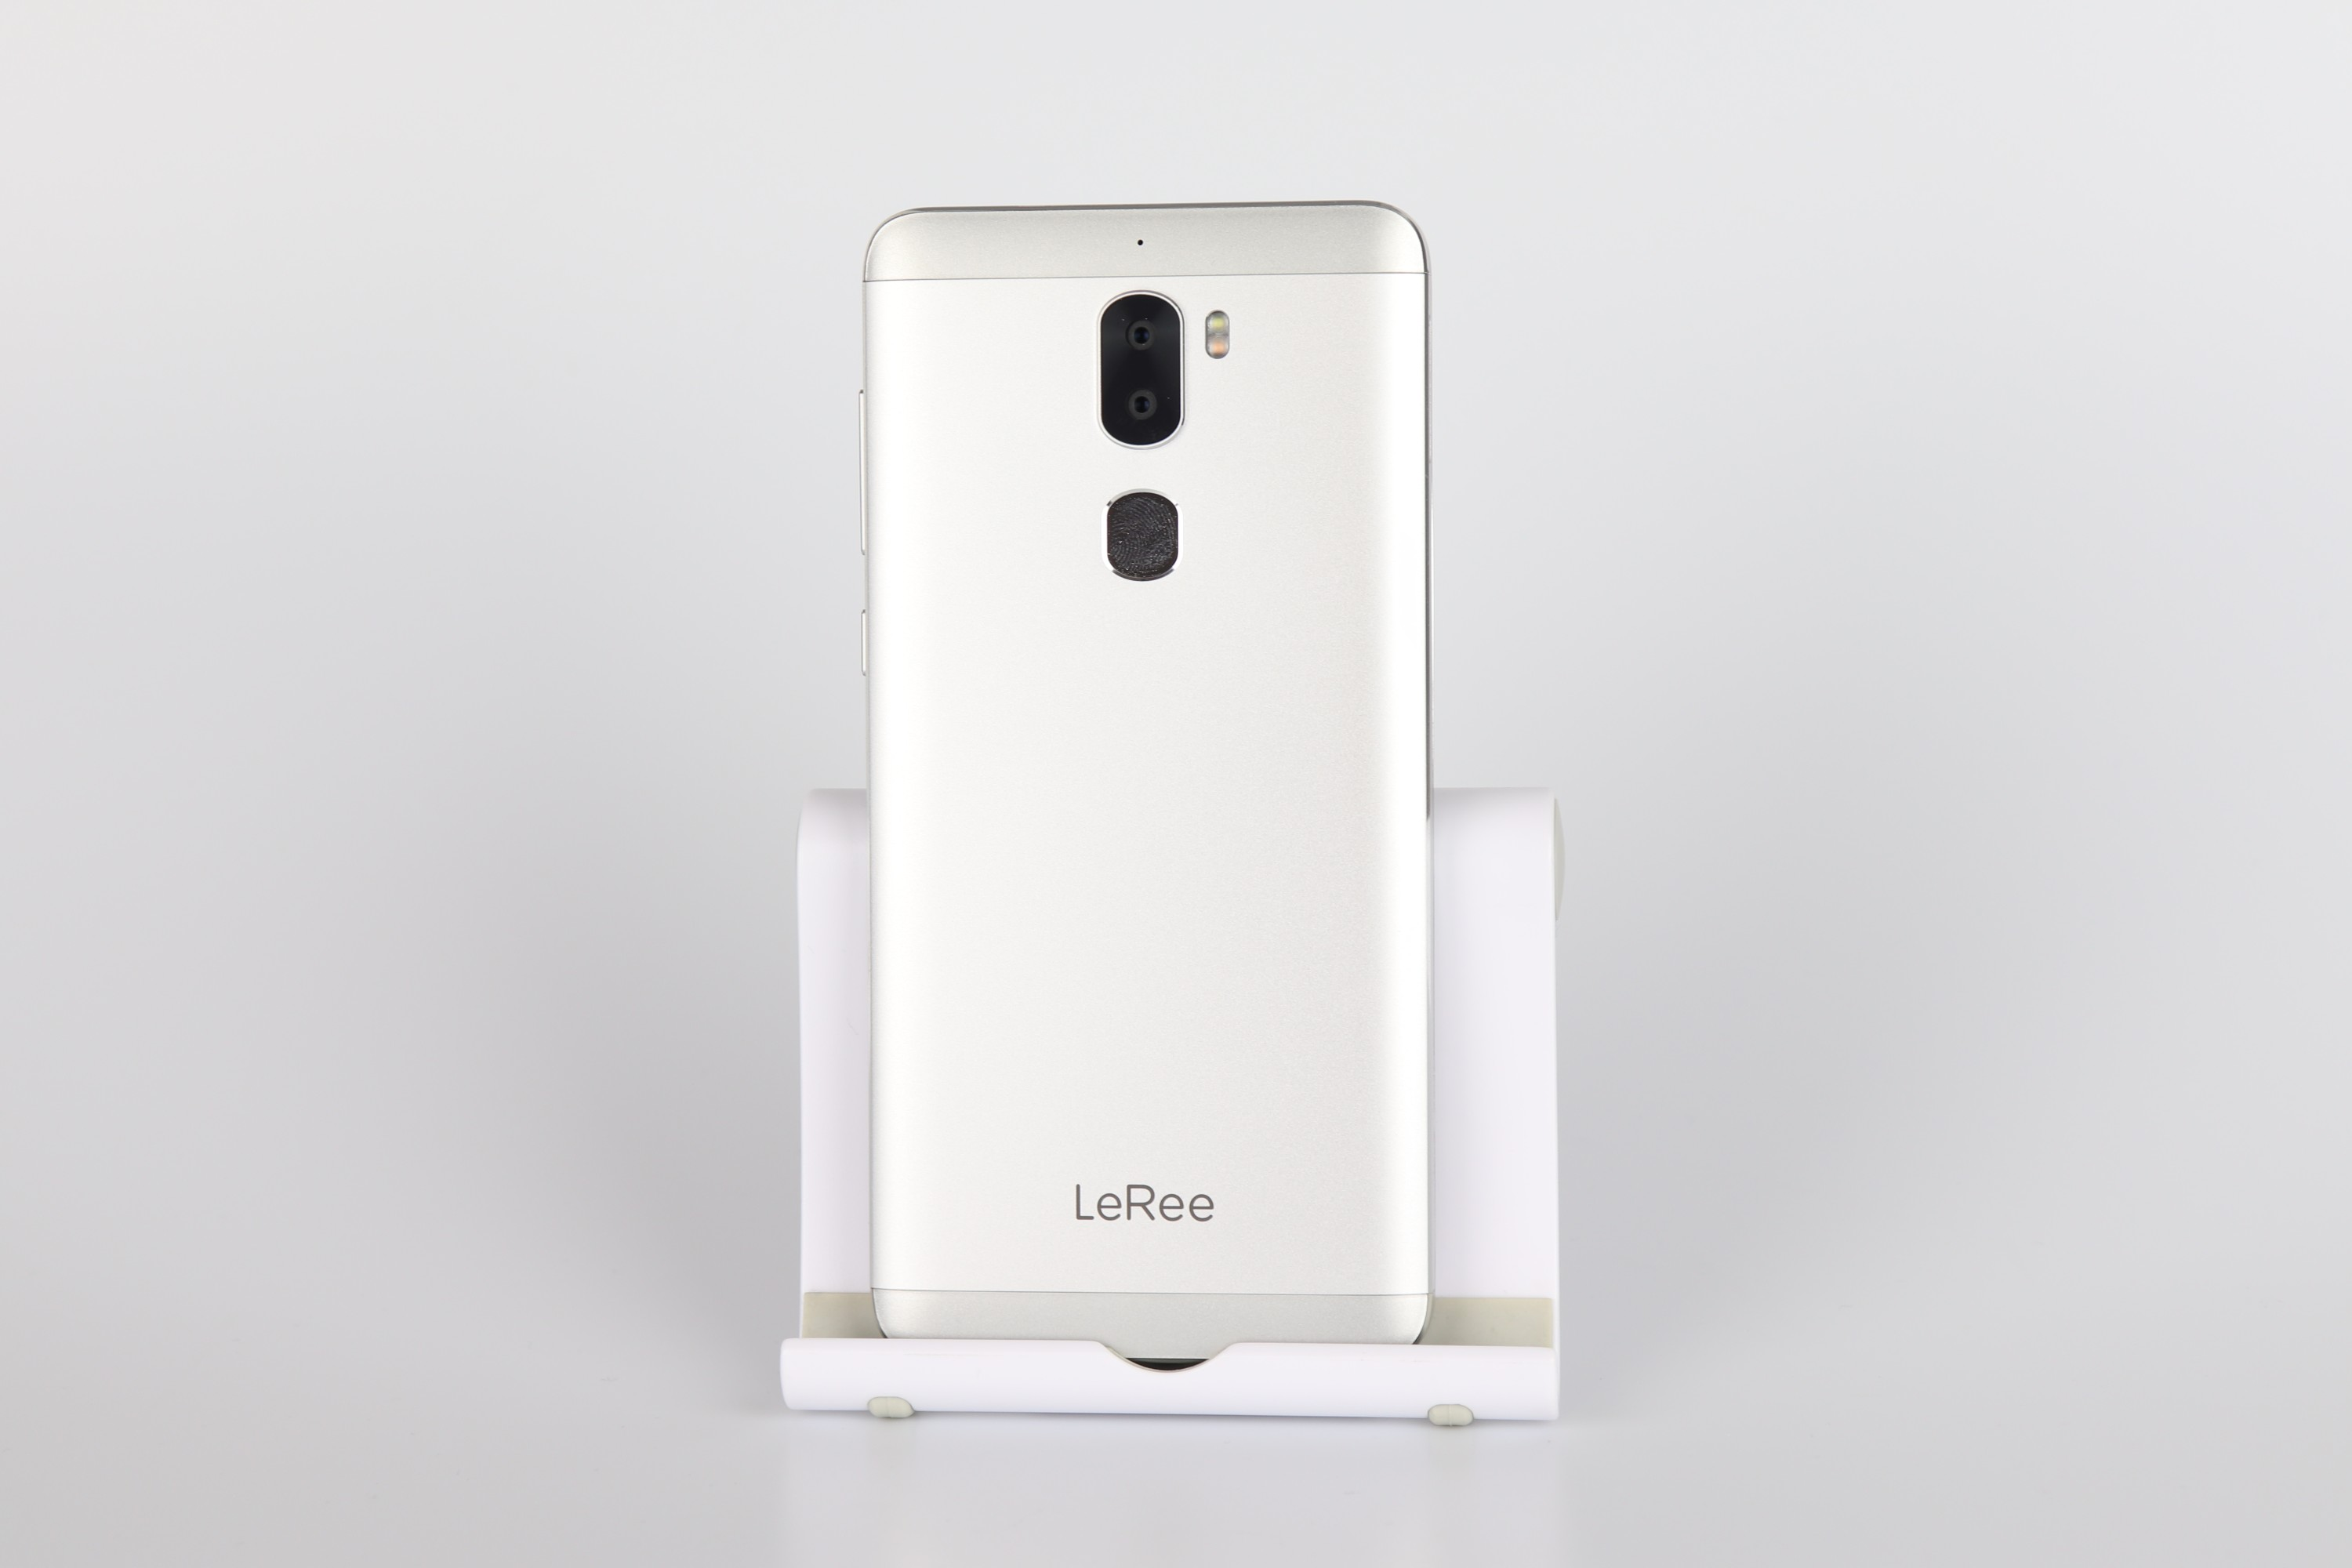 LeEco Le Ree review 5